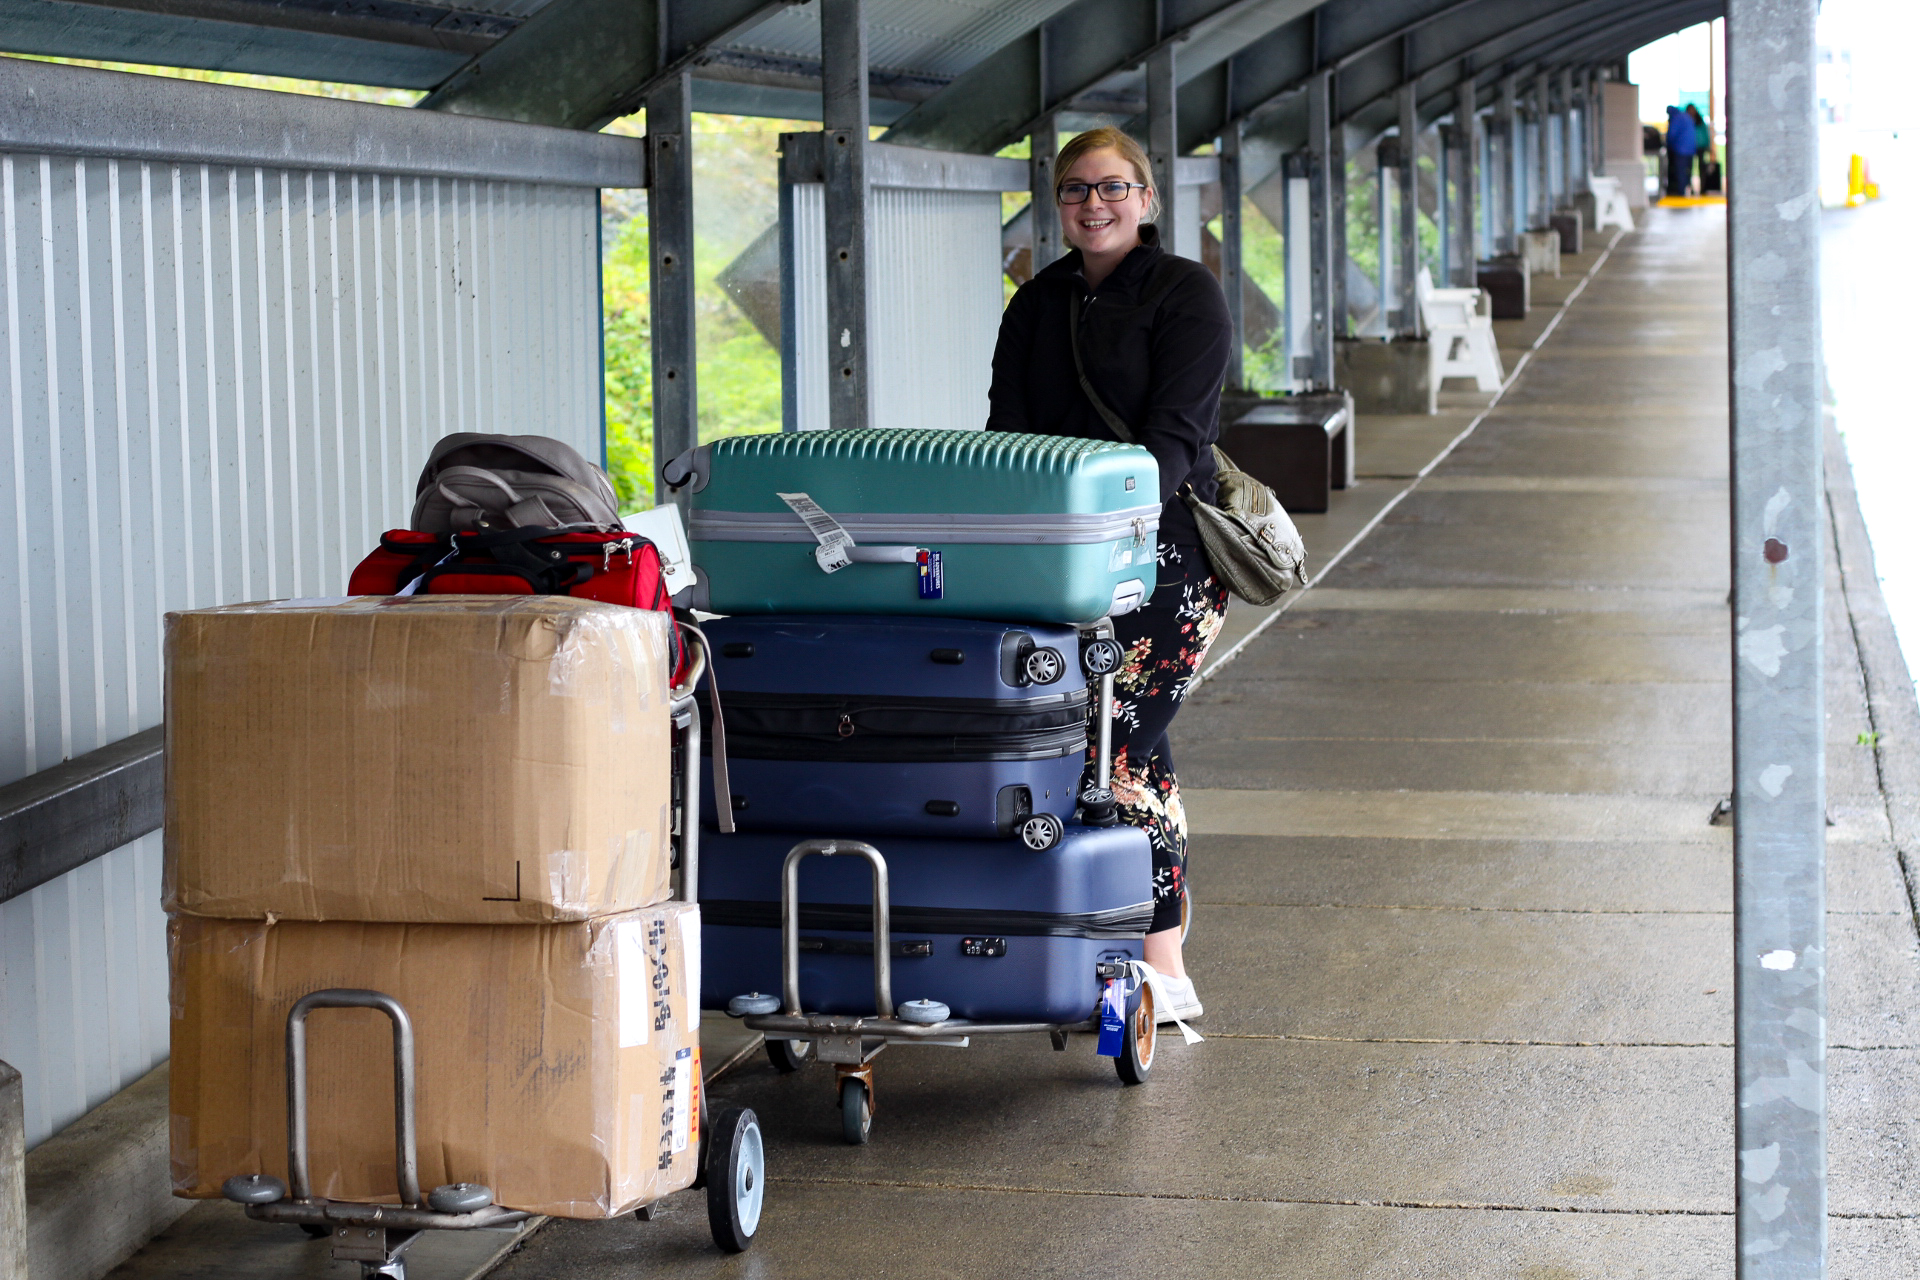 My co-worker Bailey and our very large pile of Suitcases (There are another 2 suitcases on a trolley behind Bailey)